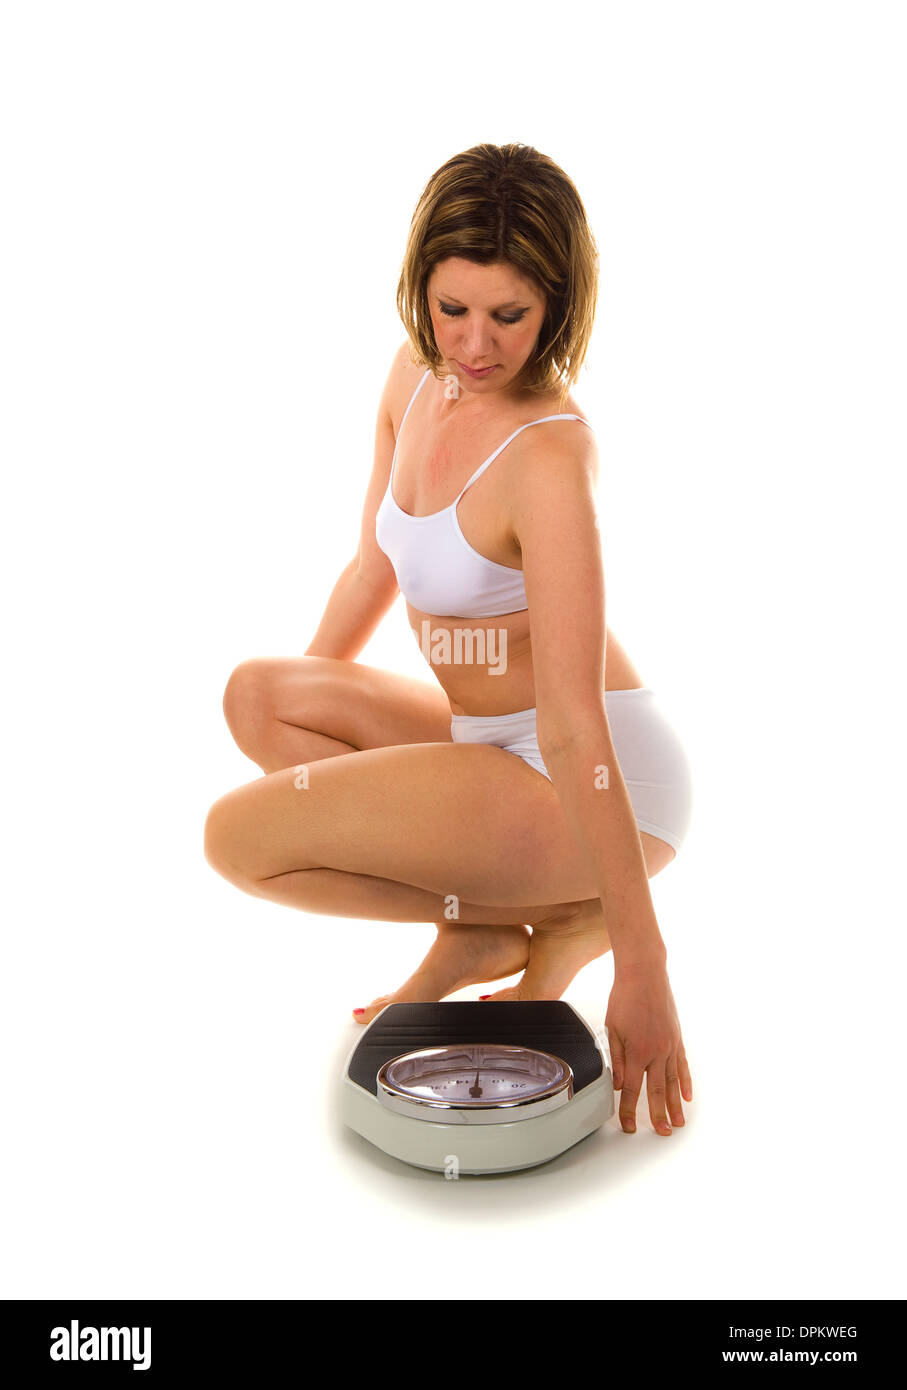 A woman is looking at the clock of her weight scale - Stock Image